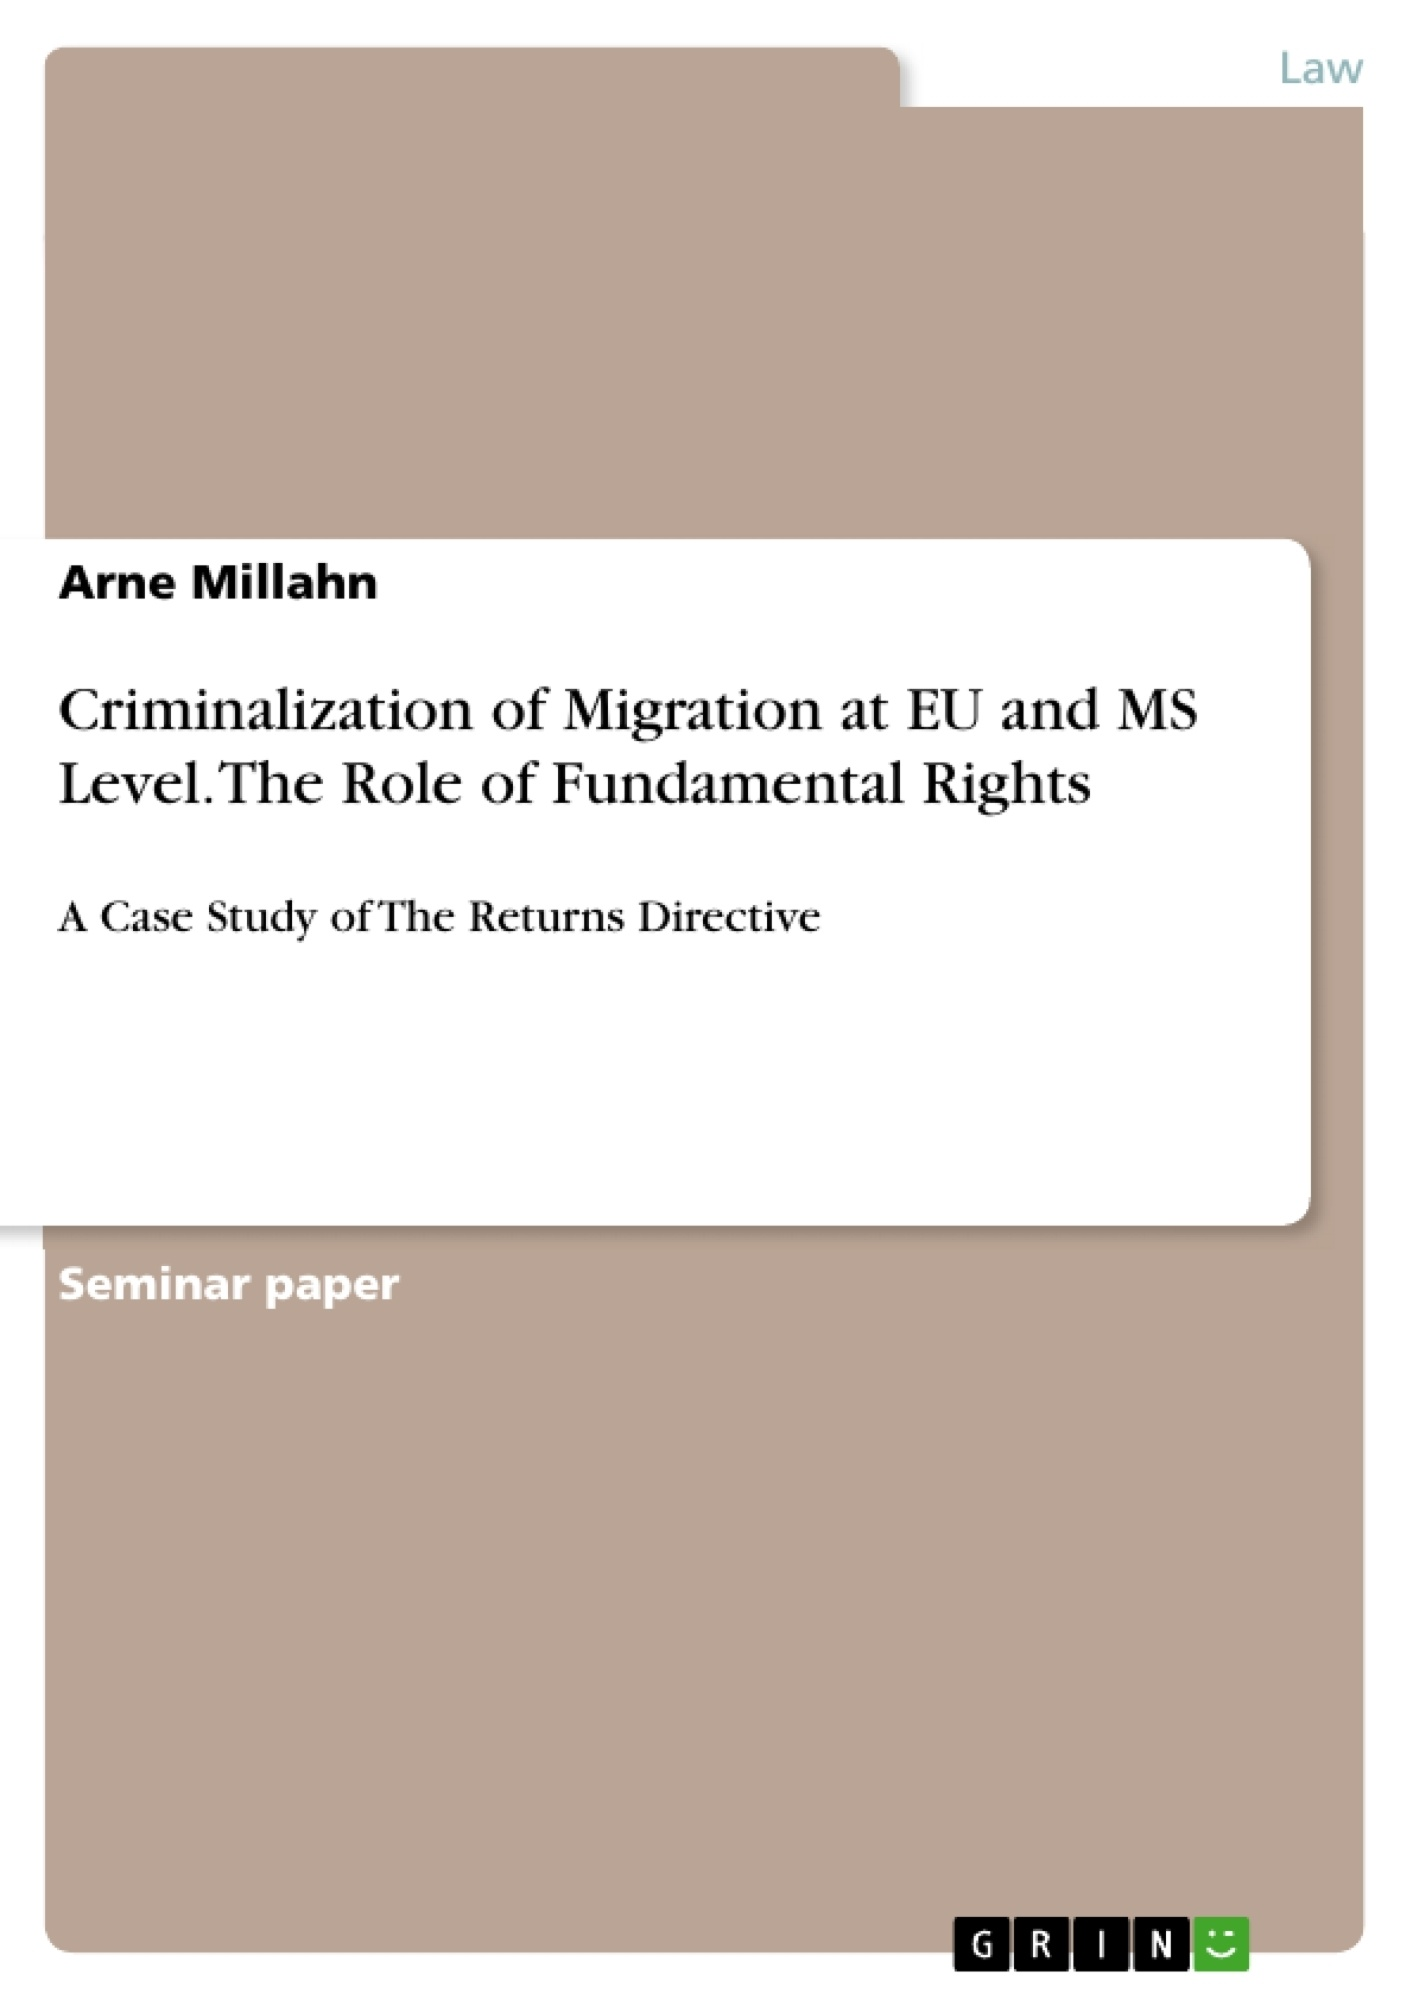 Title: Criminalization of Migration at EU and MS Level. The Role of Fundamental Rights